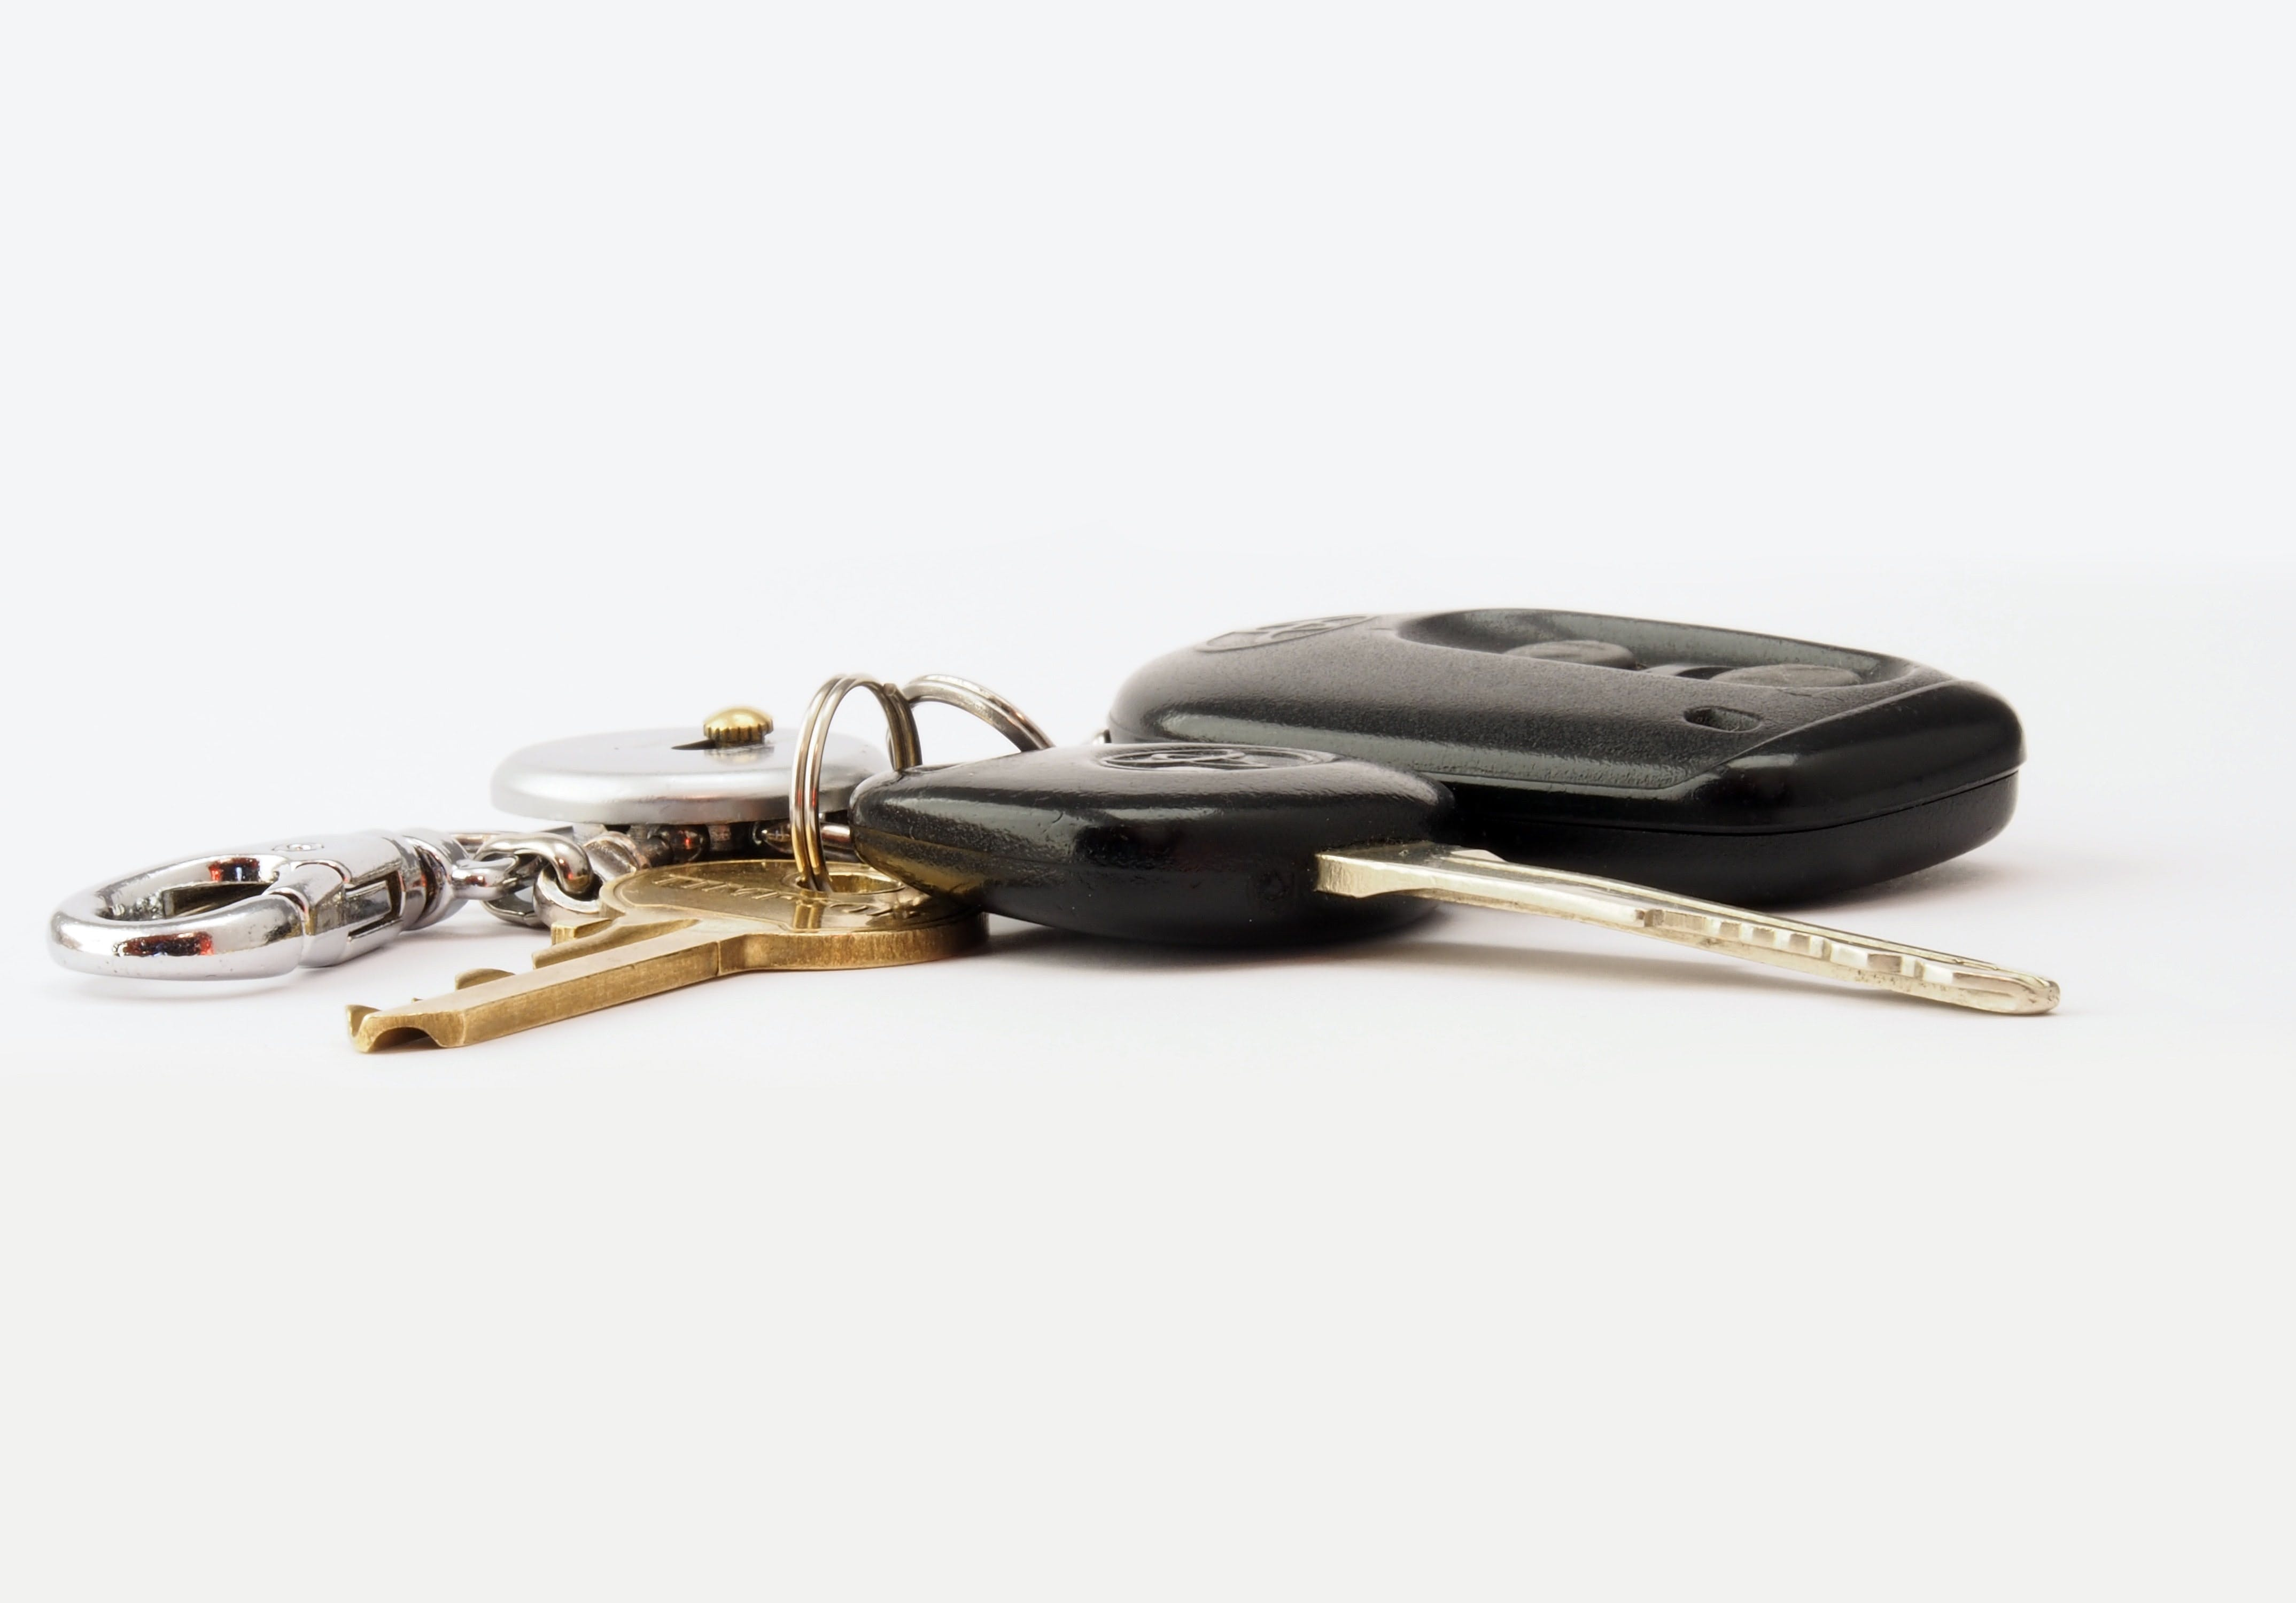 Can You Program Your Own Key Fob?